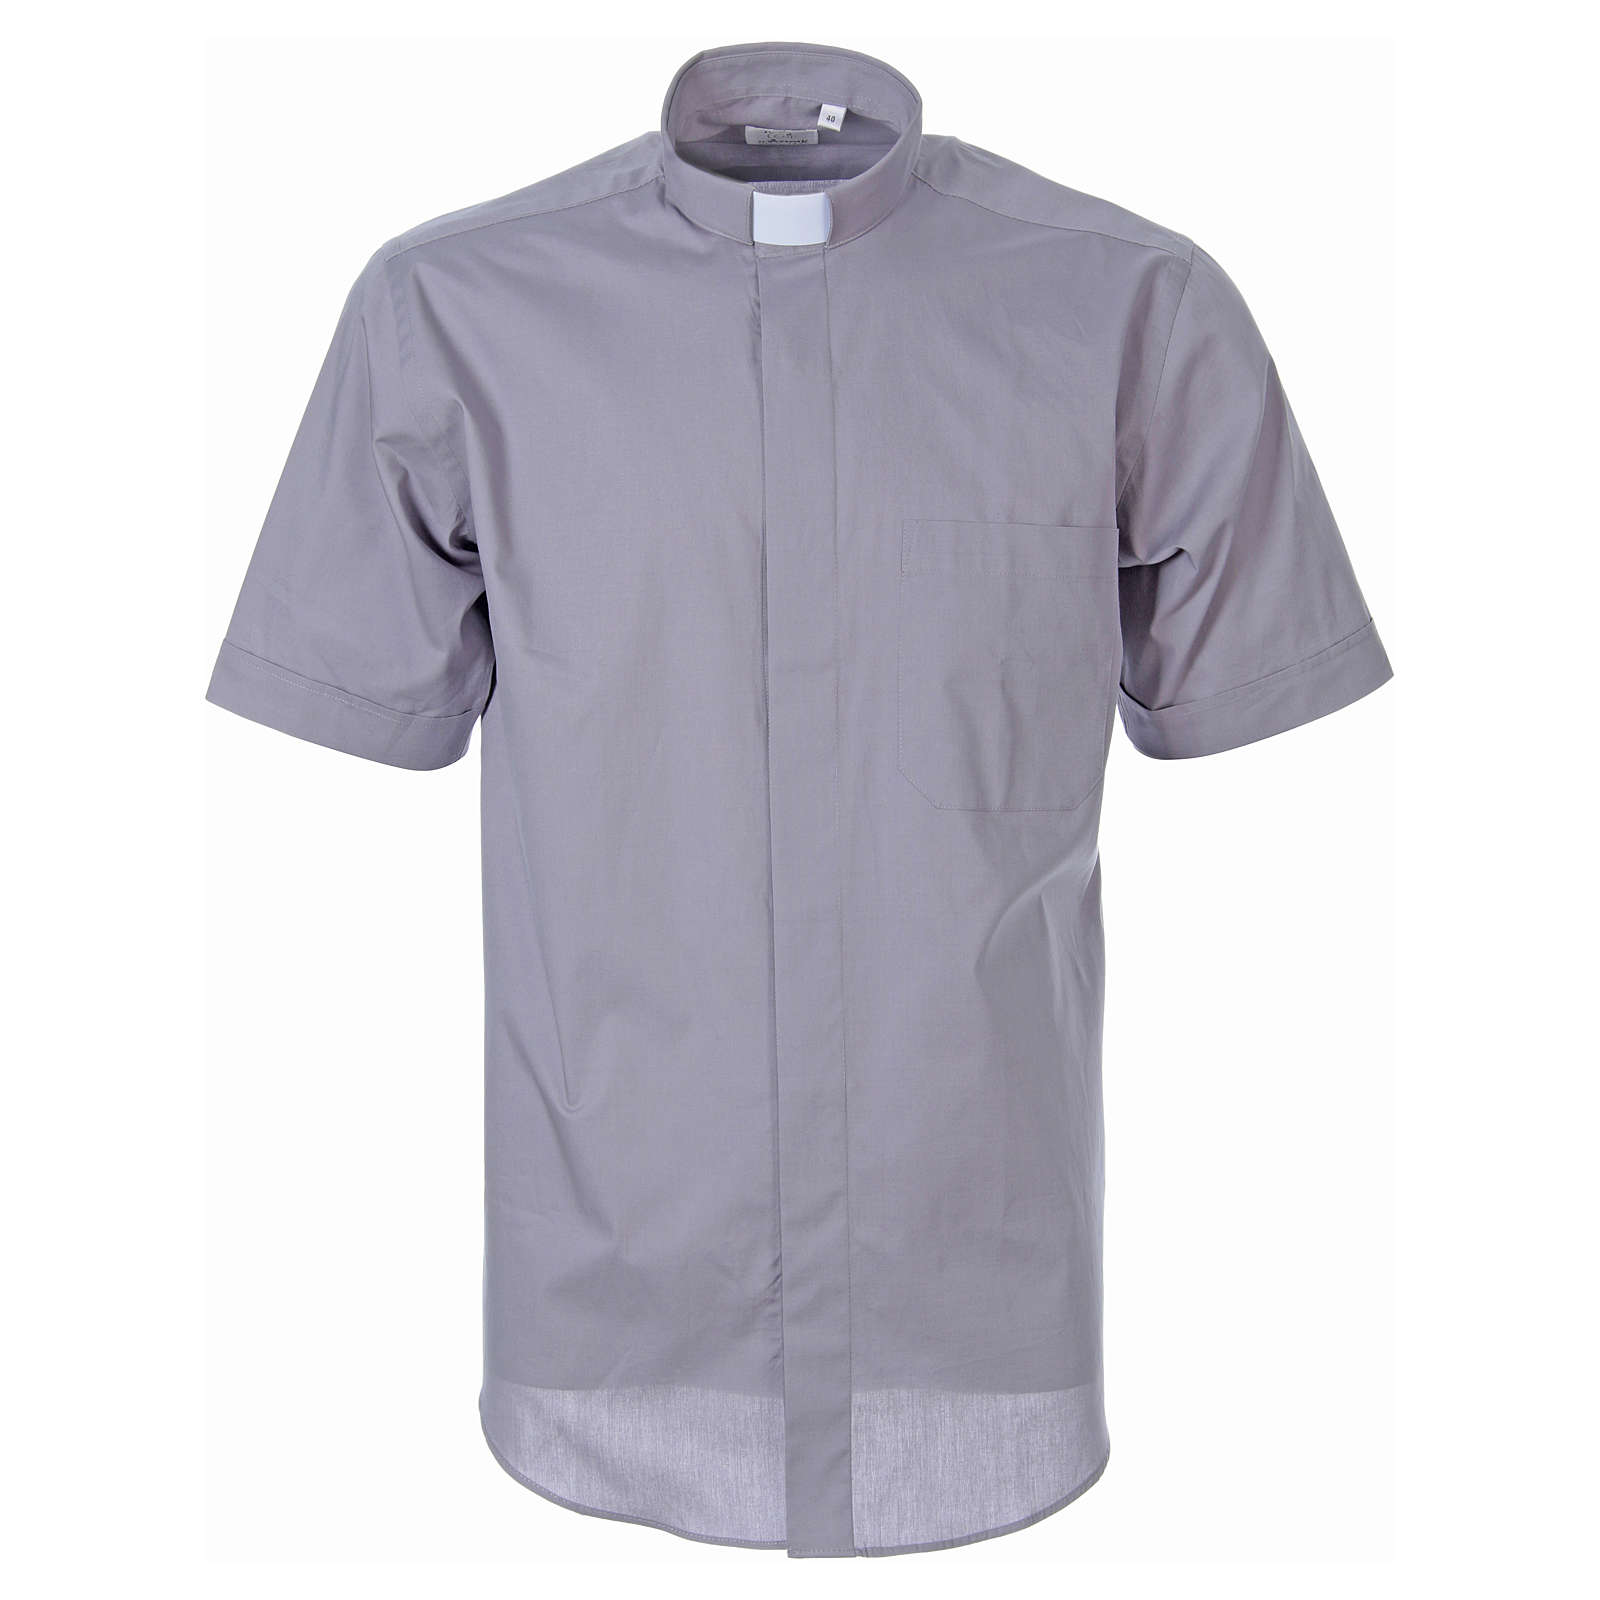 STOCK Light grey short sleeve clergy shirt, poplin 4